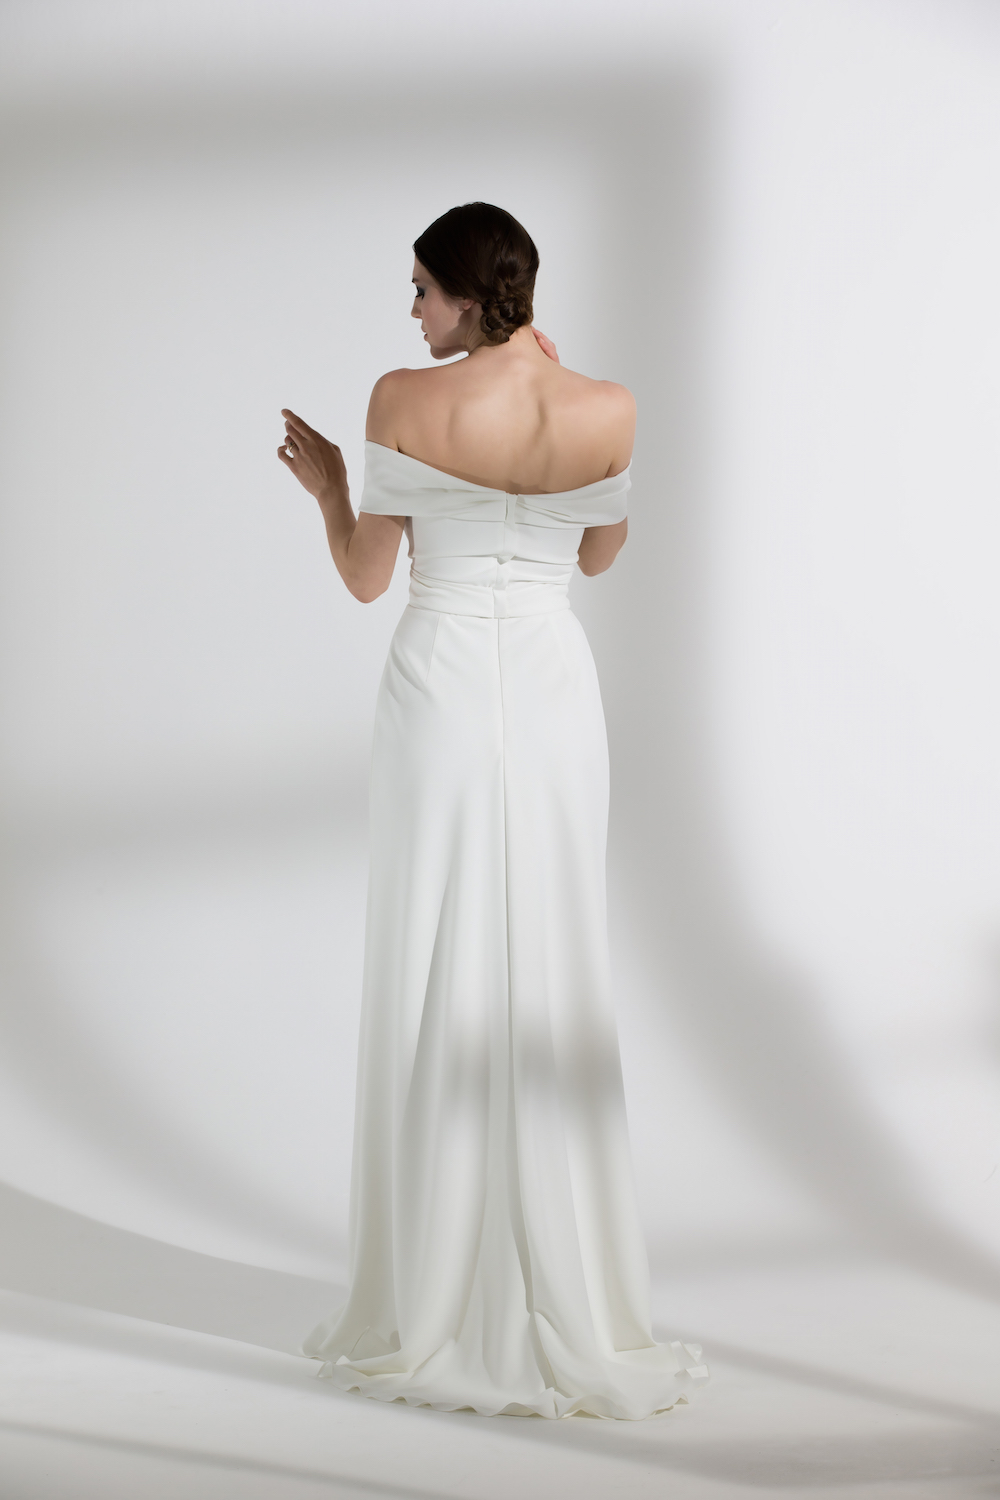 DAFFODIL DRESS | WEDDING DRESS BY HALFPENNY LONDON